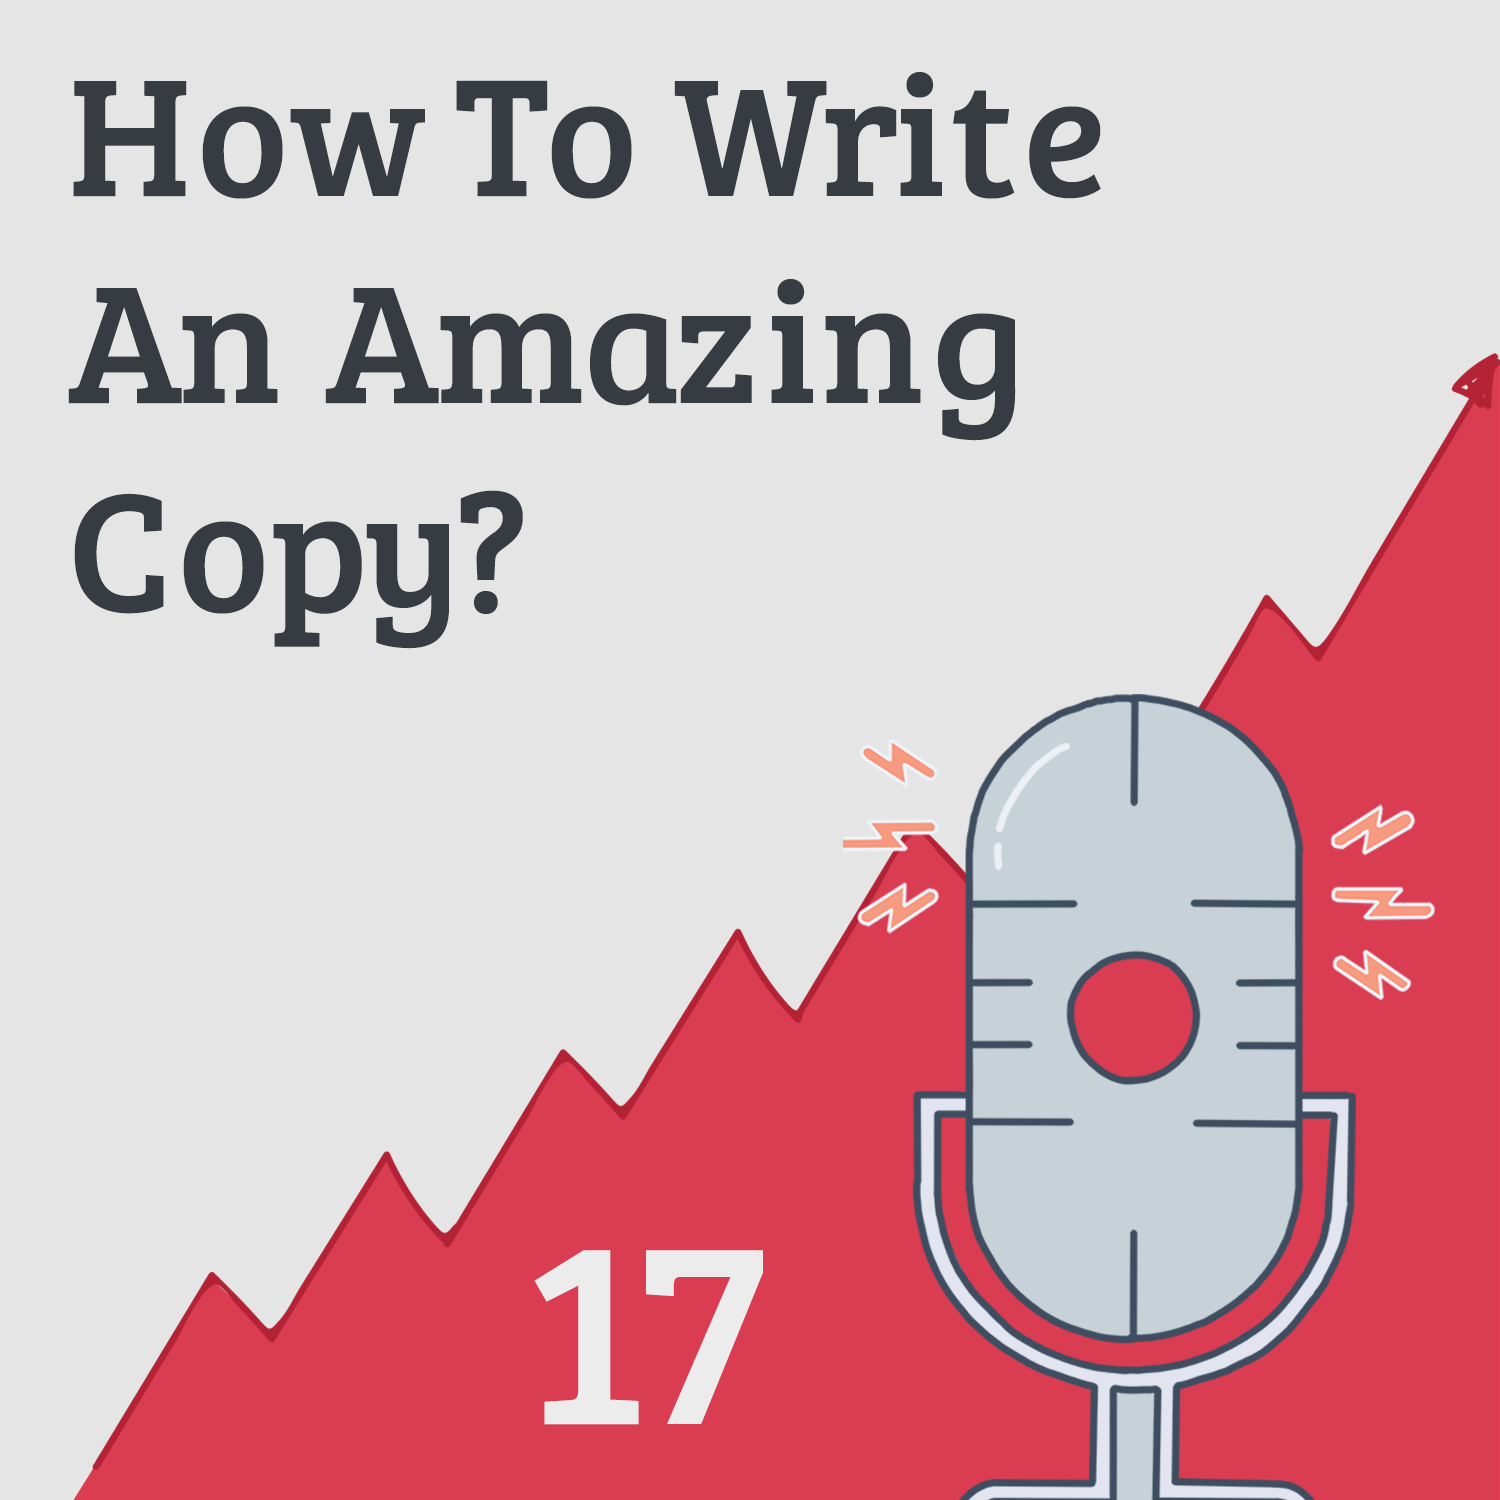 Irresistible Offers 3: How to Write Amazing Copy (Even if You Hate Copywriting)